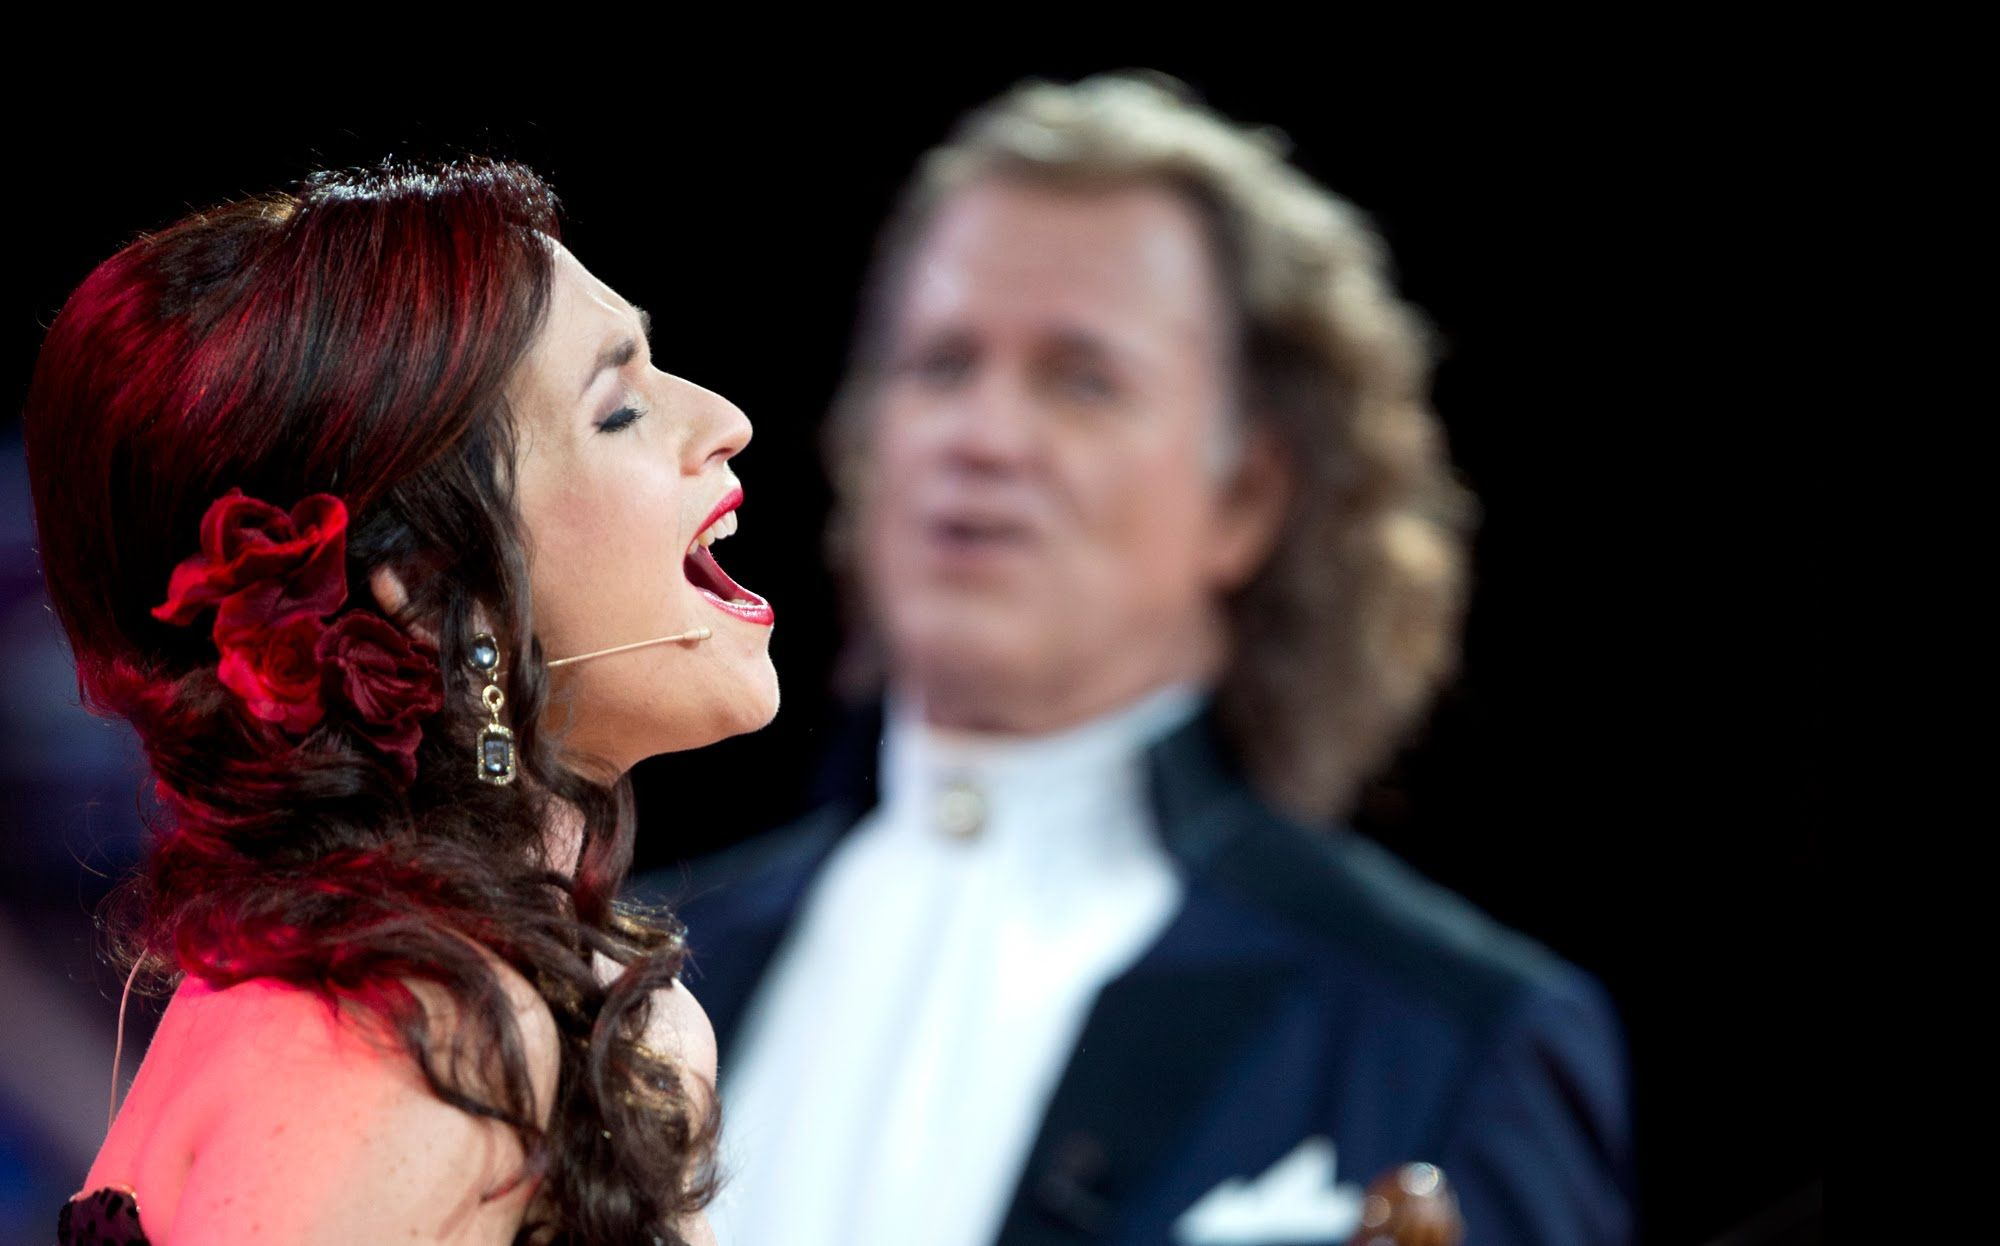 Andre Rieu Amp Laura Engel Performing Besame Mucho Live In